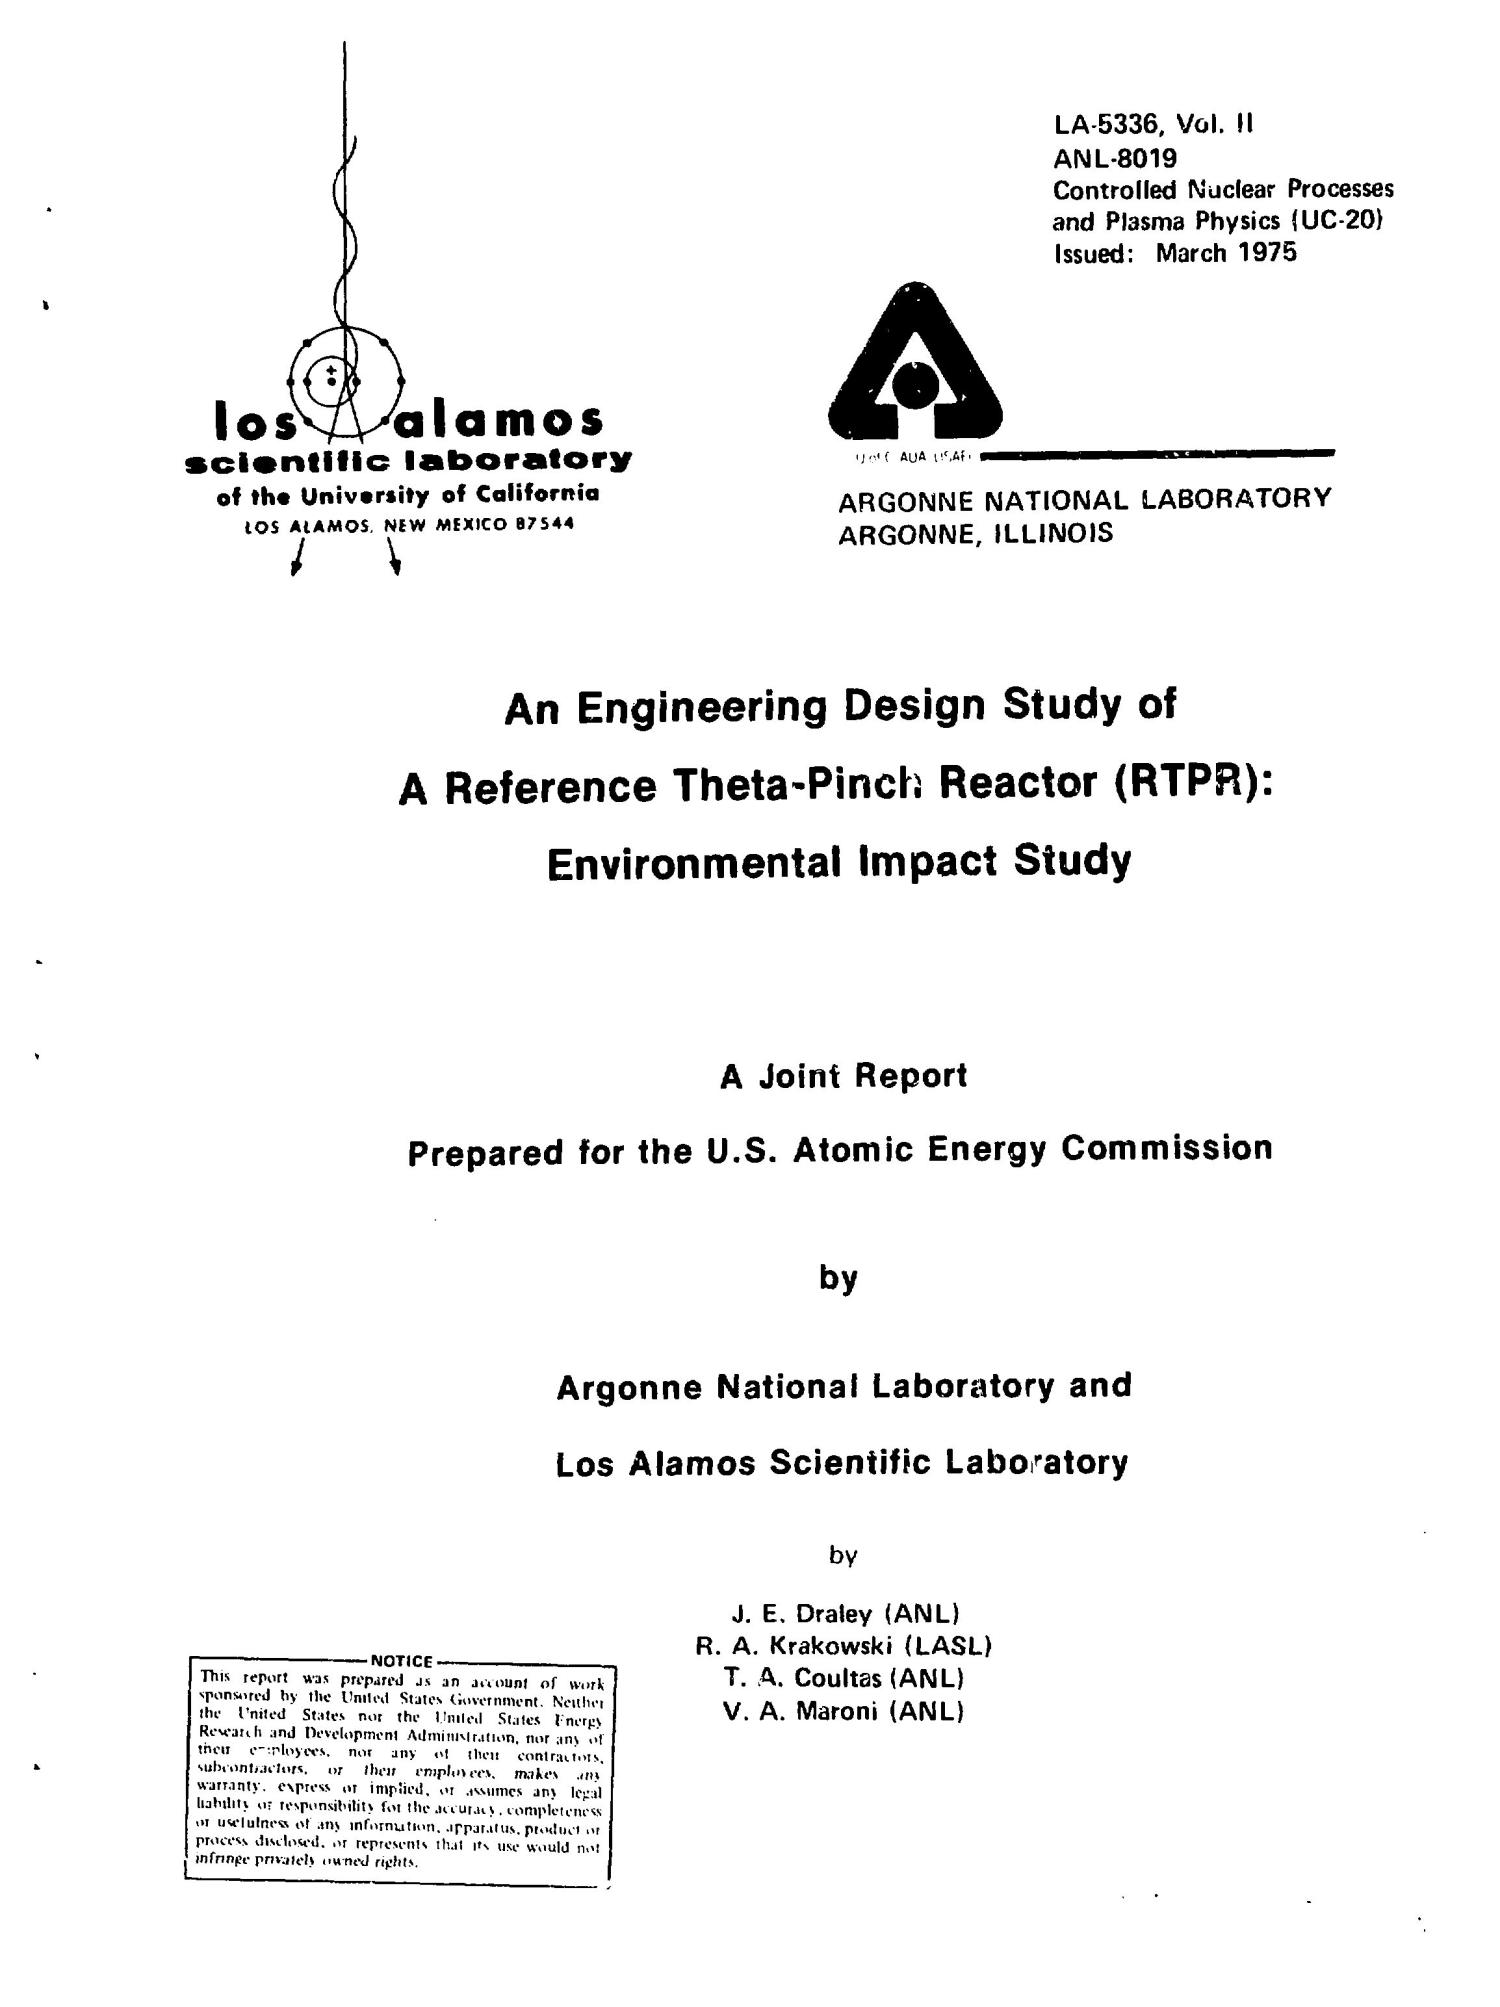 Engineering design study of a reference theta-pinch reactor (RTPR): environmental impact study                                                                                                      [Sequence #]: 3 of 80